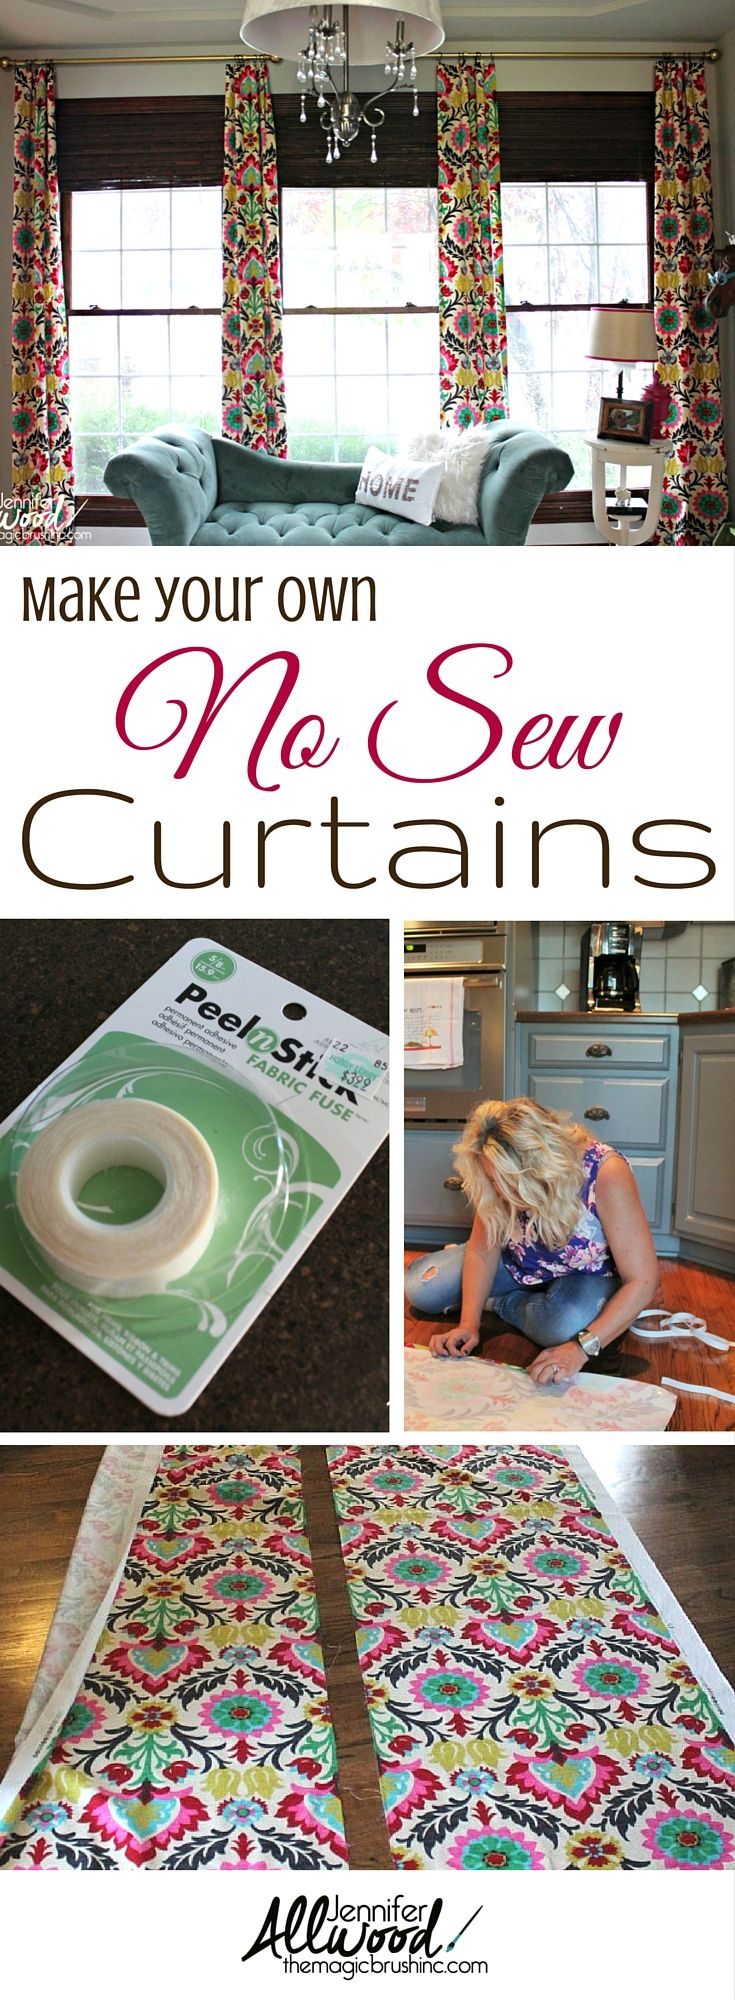 How to's : How I no-sewed the Happiest Office curtains in the world! No sewing required with Waverly fabric Santa Maria Desert Flower. More DIY projects from theMagicBrushinc.com